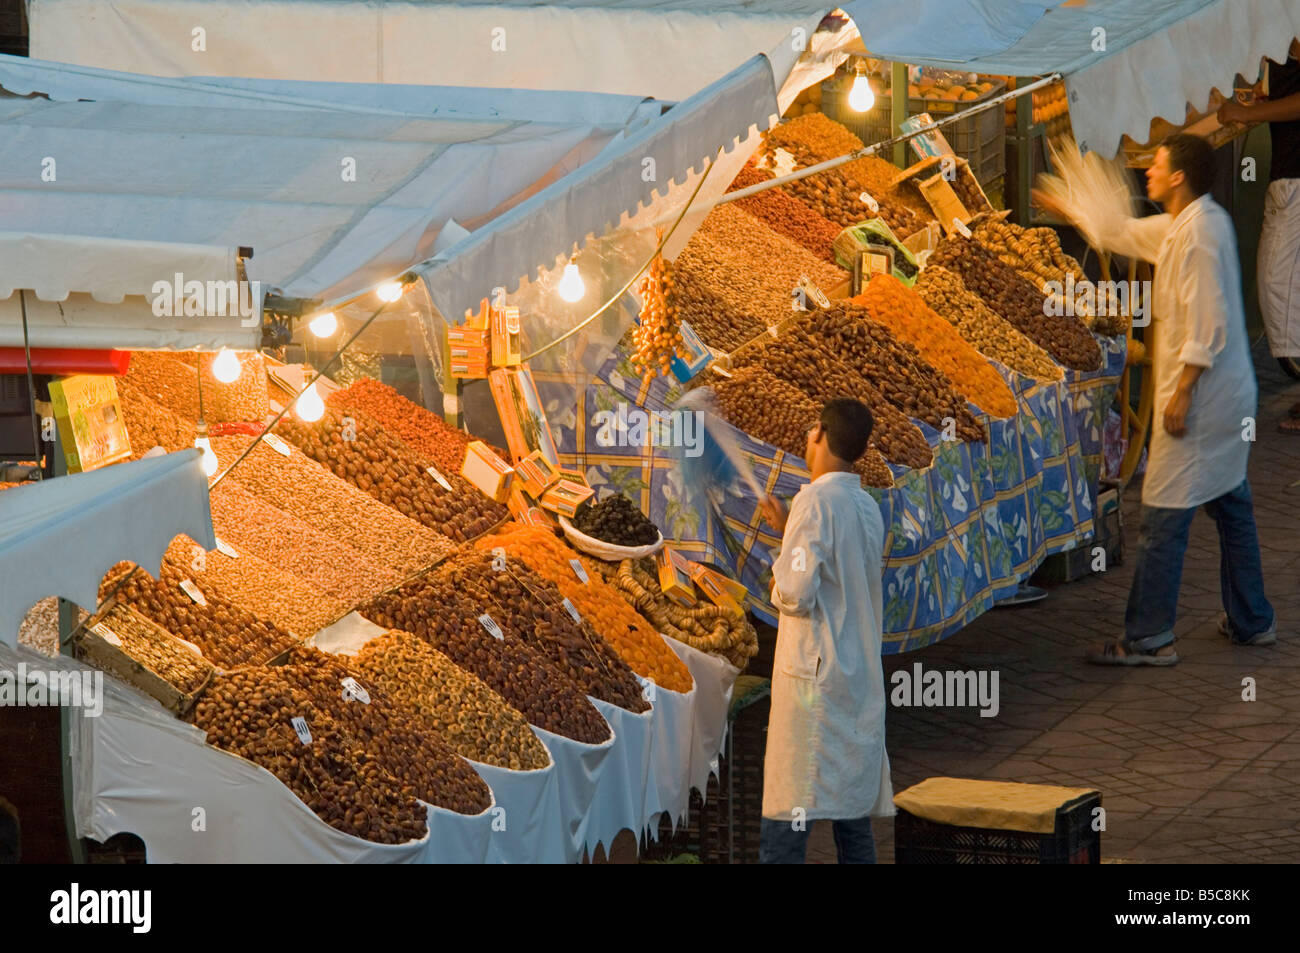 2 men prepare and clean their stalls selling dried food at the Djemaa El Fna in Marrakesh. Stock Photo